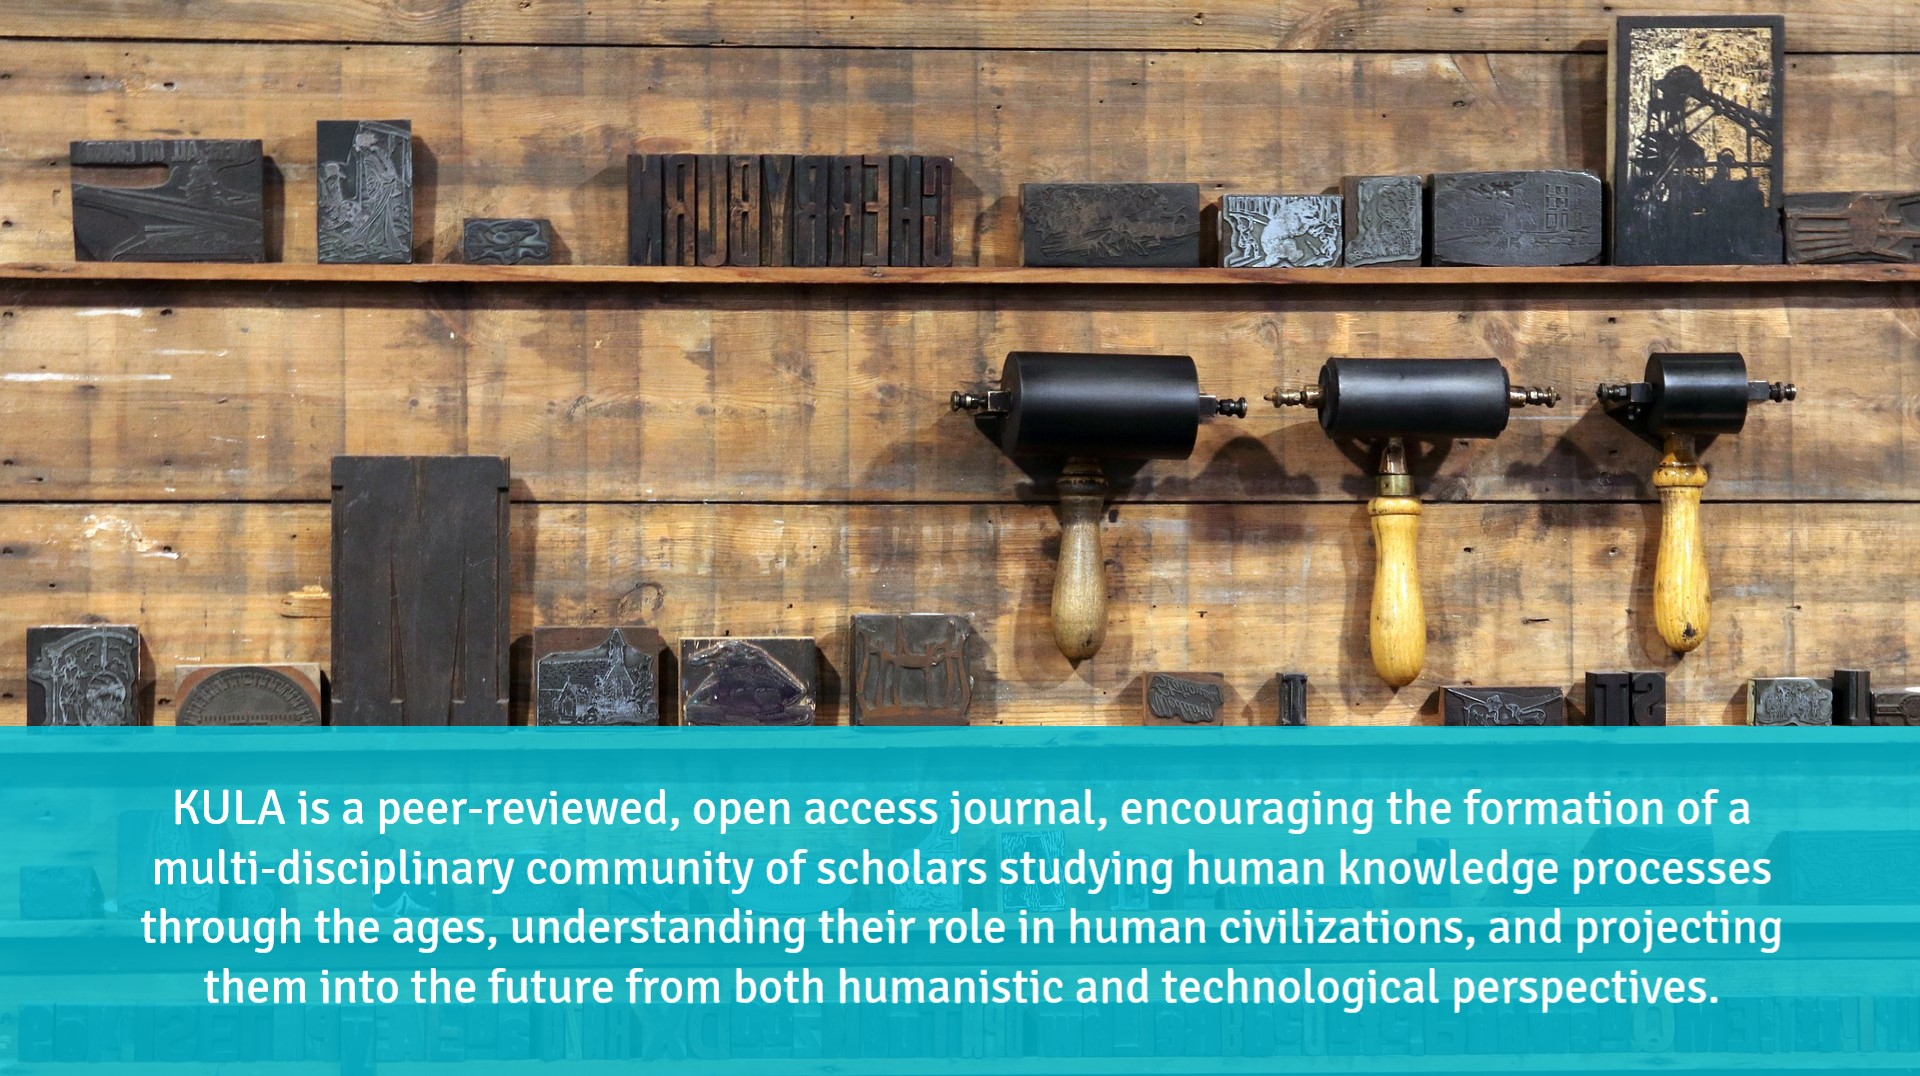 "Image of pressroom equipment (ink rollers and inking blocks) in two rows. Blue text banner at bottom of image reads ""KULA is a peer-reviewed, open-access journal encouraging the formation of a multidisciplinary community of scholars studying knowledge processes through the ages, understanding their role in human civilizations, and projecting them into the future from both humanistic and technological perspectives."""